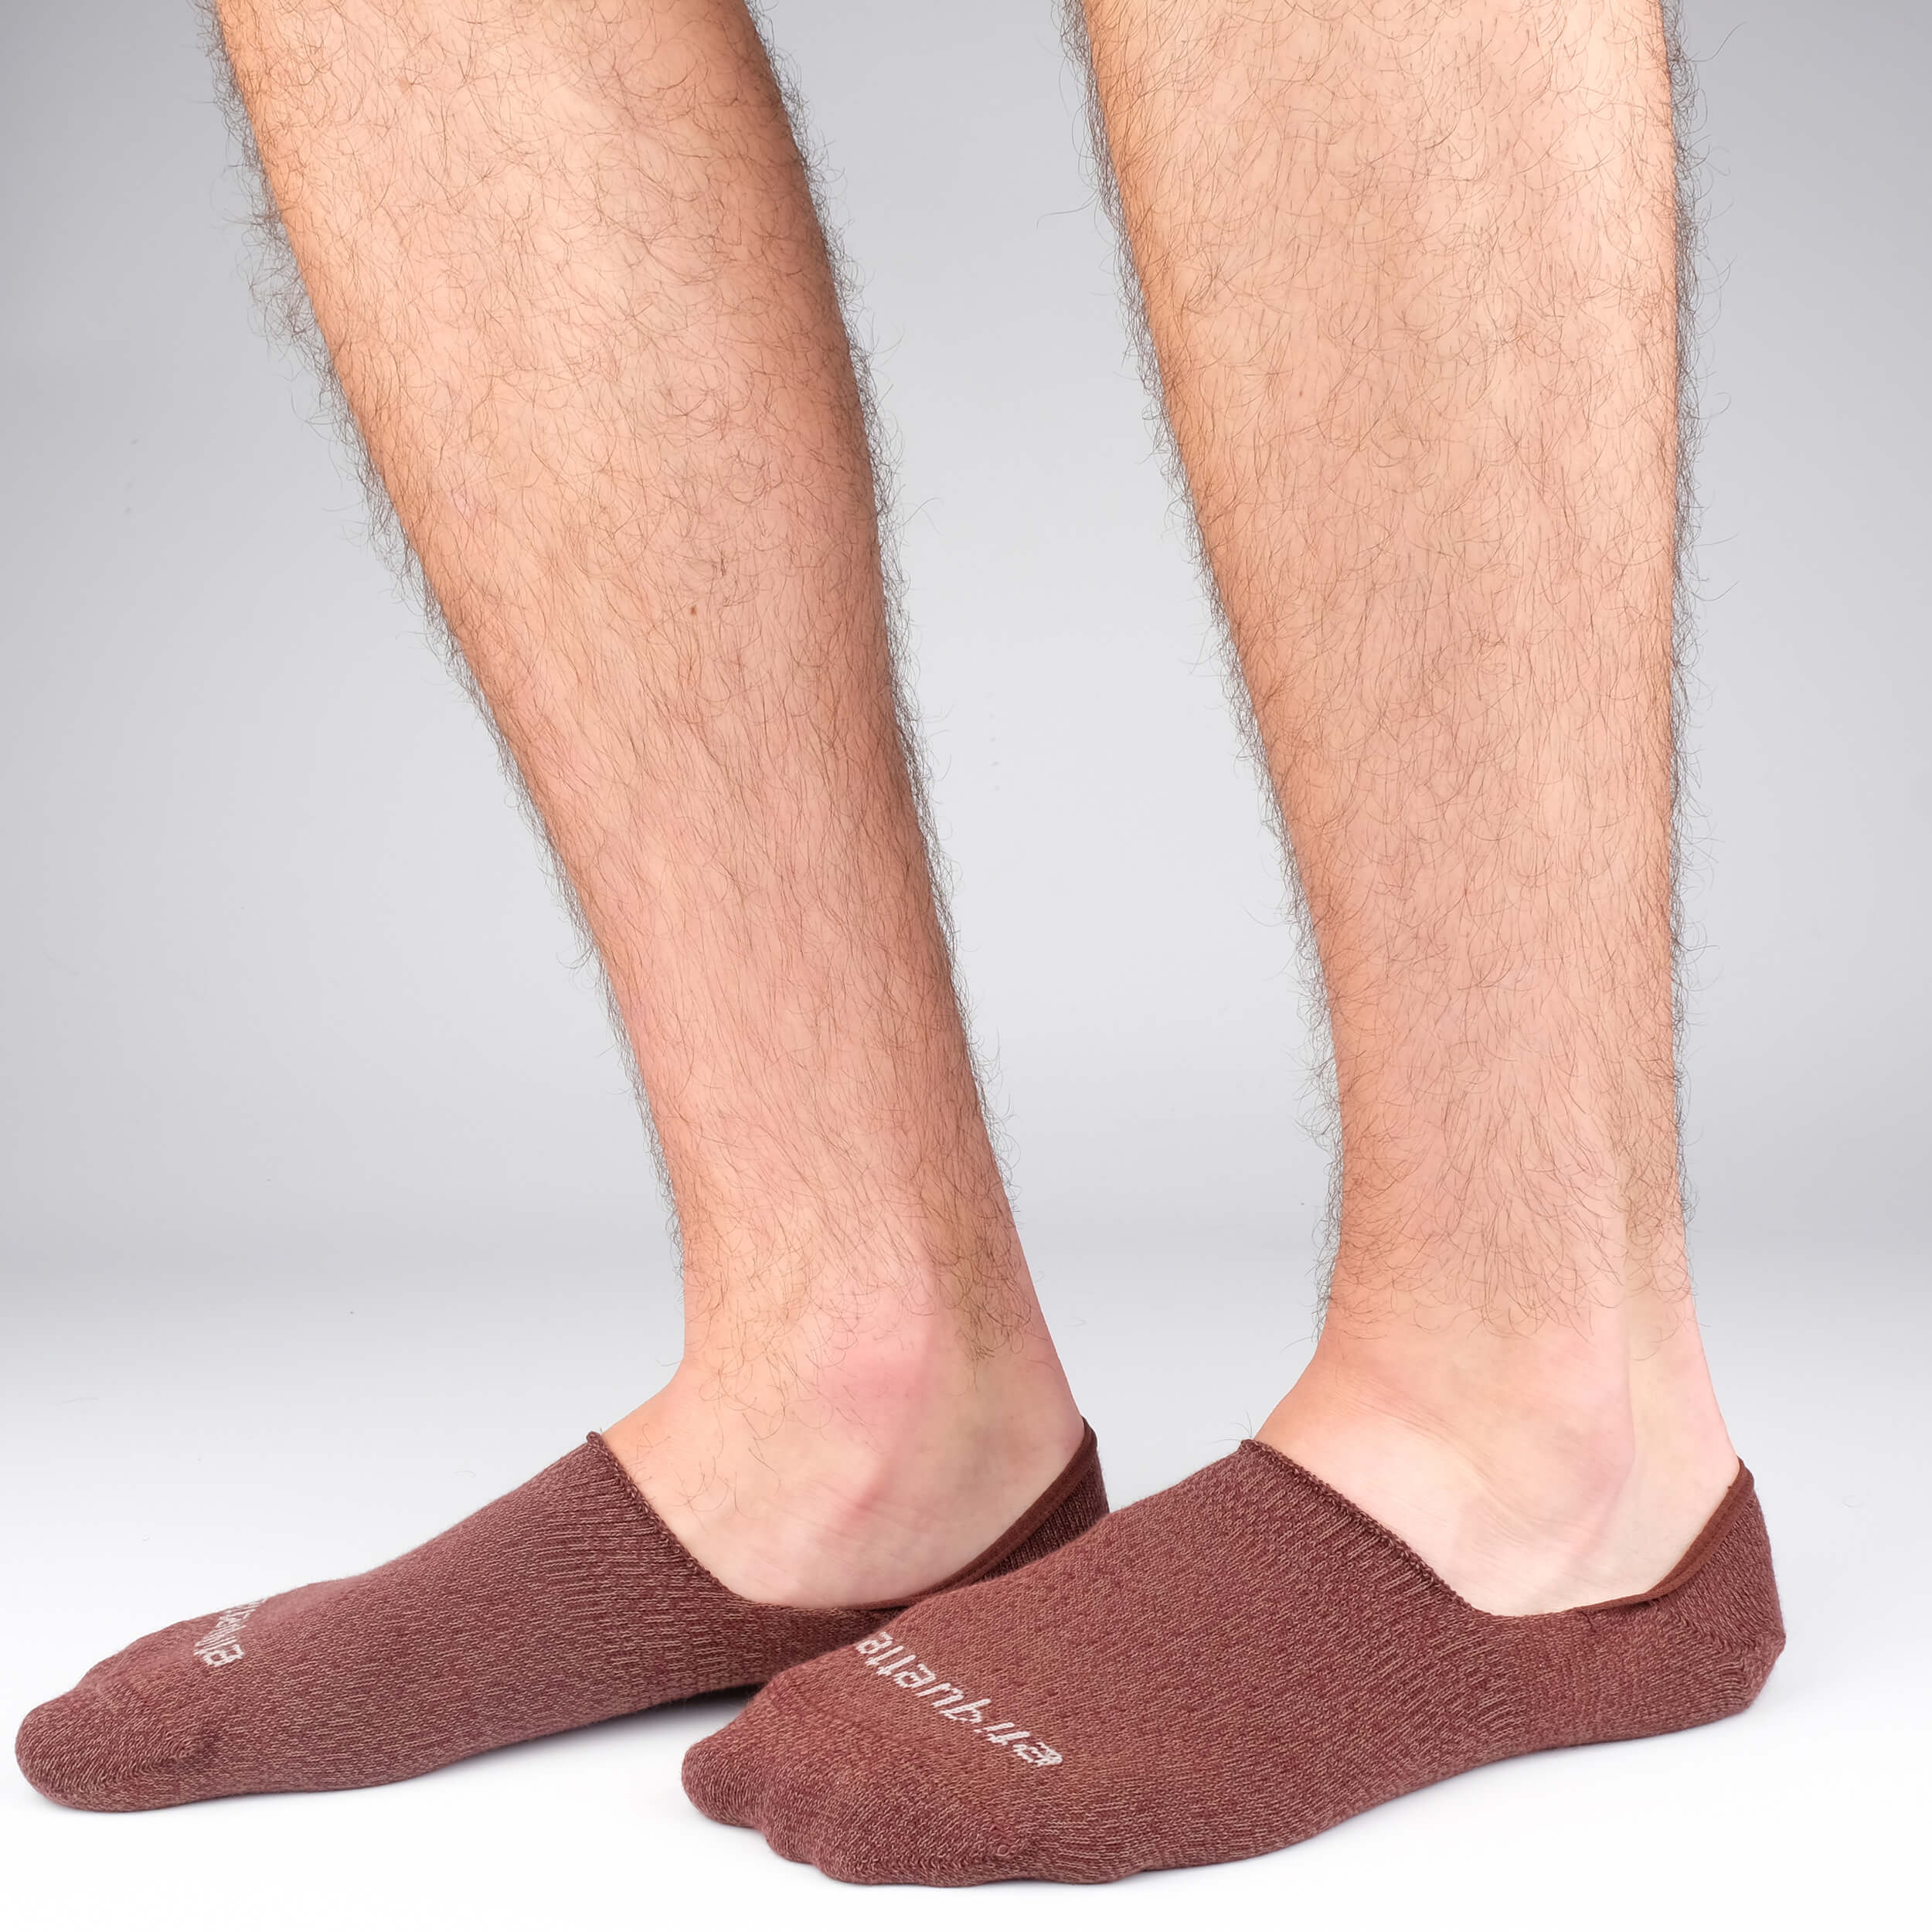 Men's No Show Socks - Mouline Bordeaux